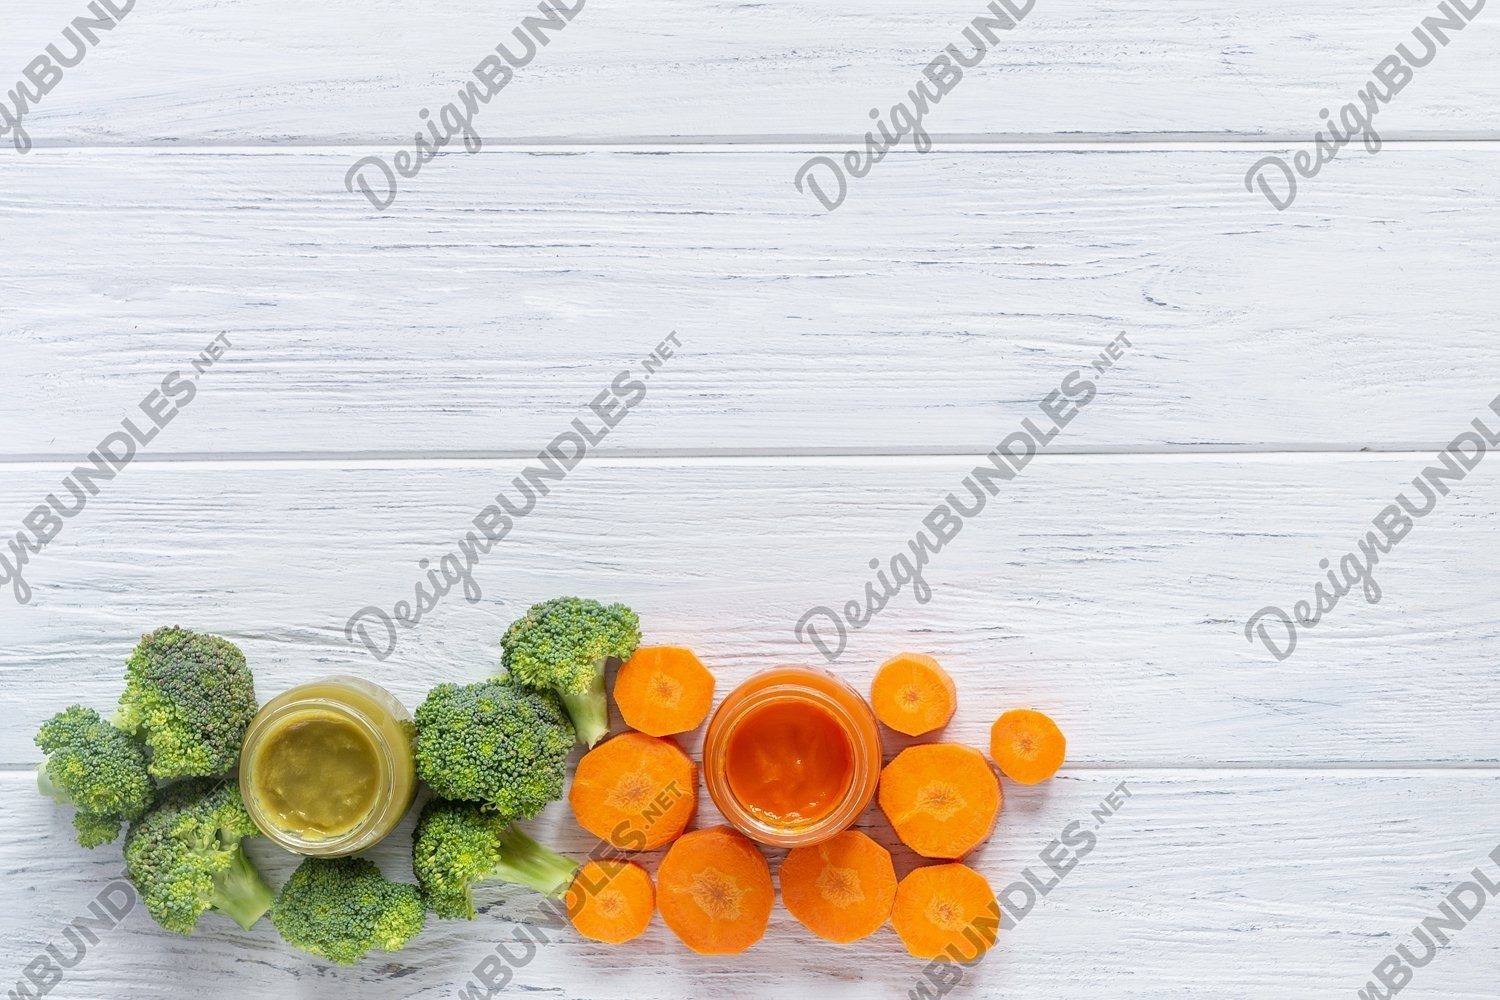 Glass jars with baby food on white wooden background example image 1